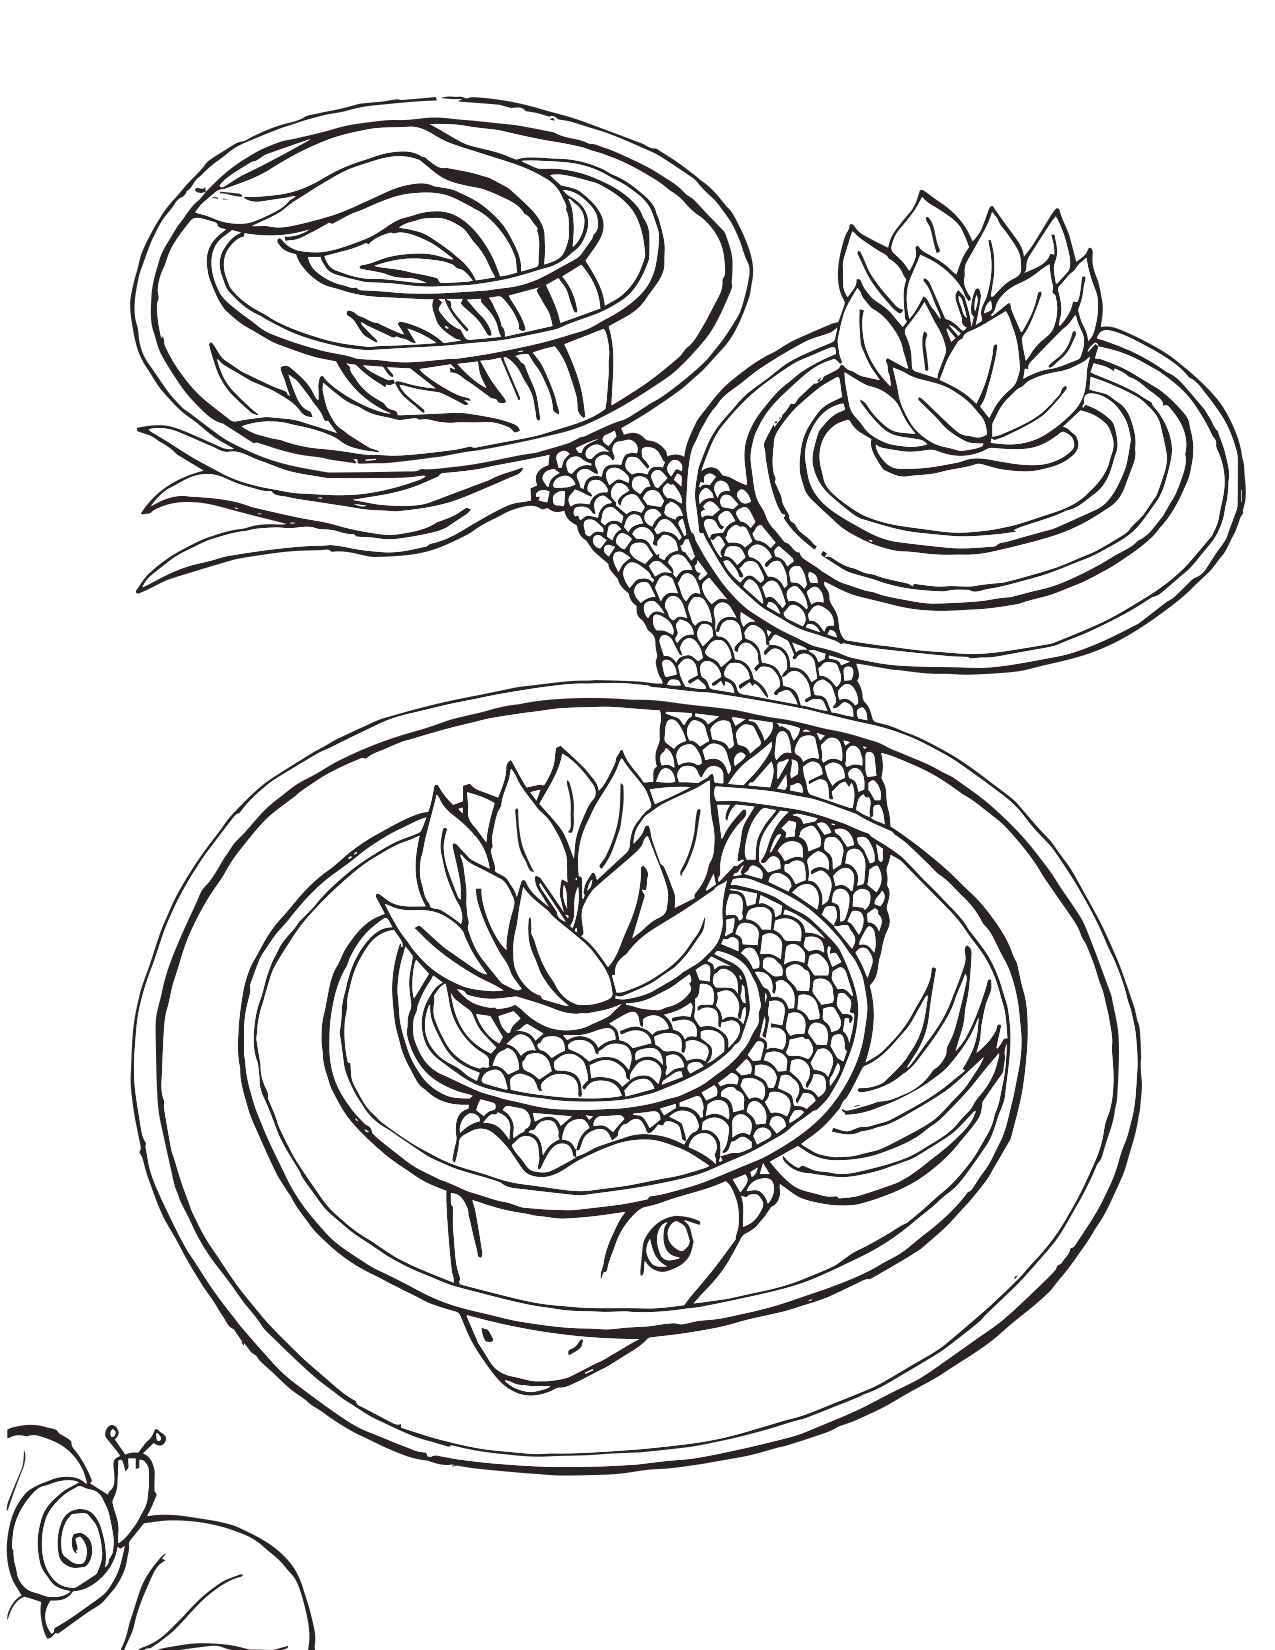 Koi Fish With Lily Pad Coloring Page